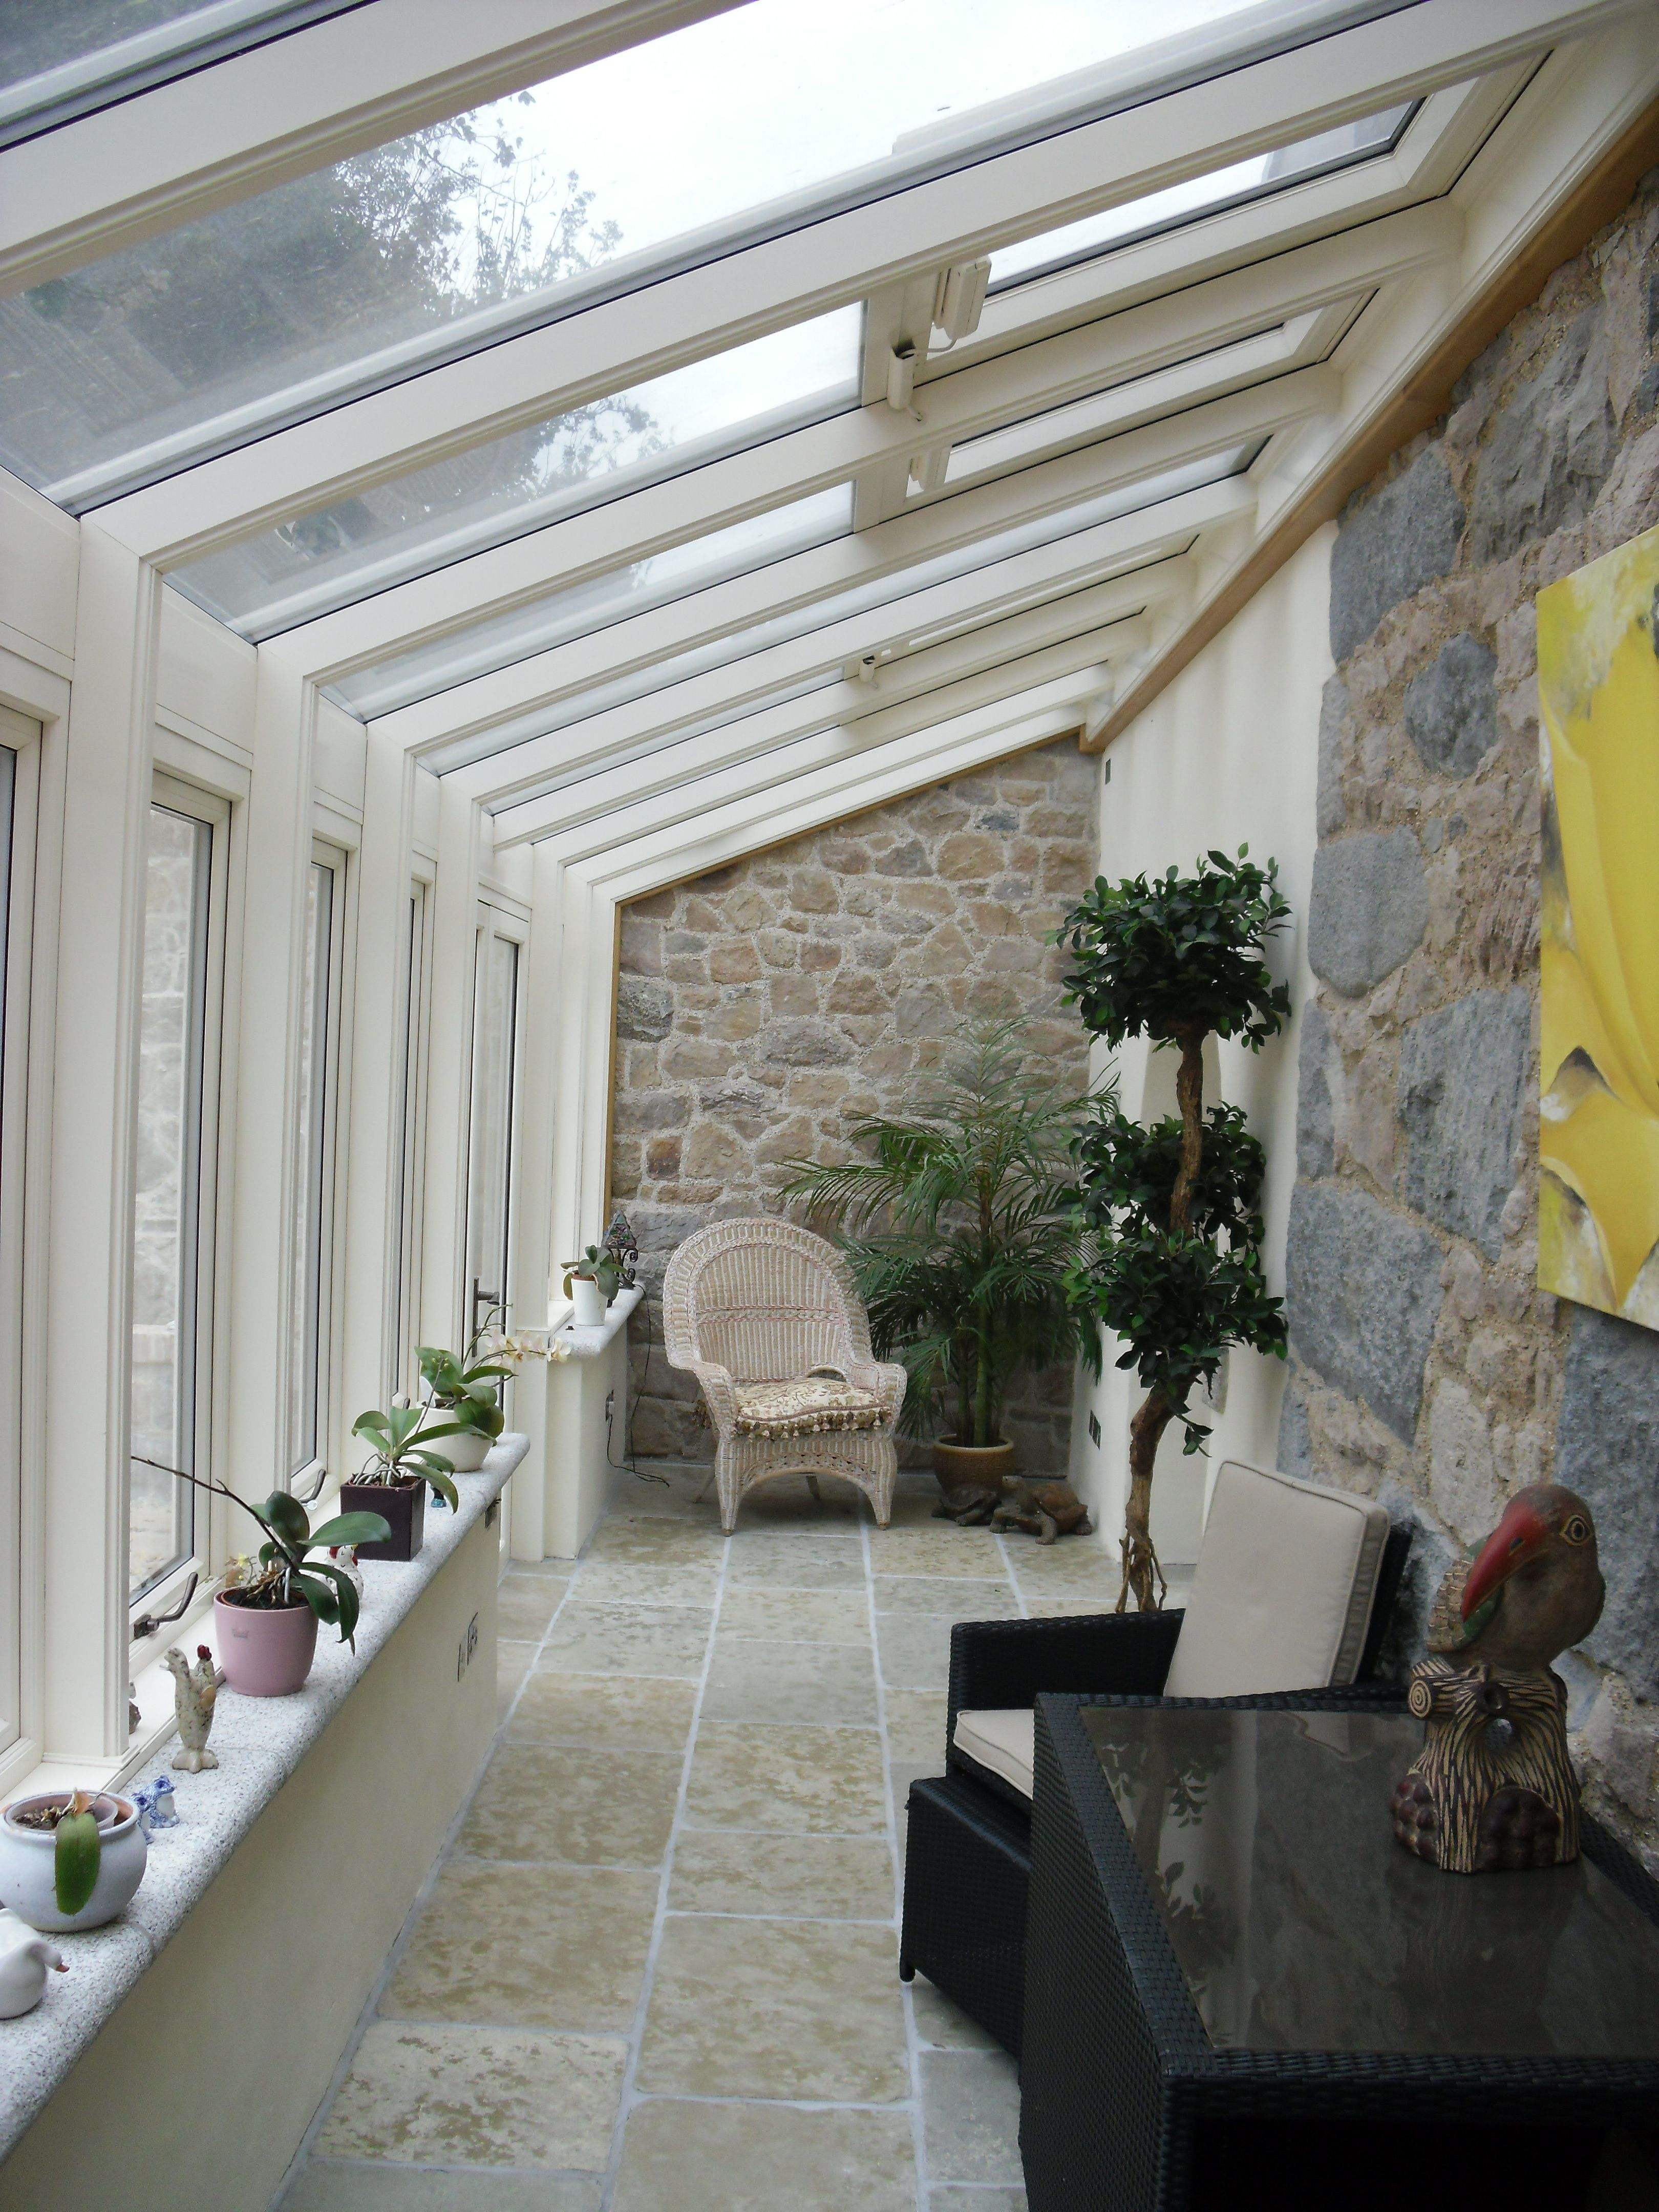 Conservatory Room Addition In The Uk 1040x1485 In 2020: A Glazed Walkway Opens Up The Side Of A House. Works Really Well To Extend A Terrace